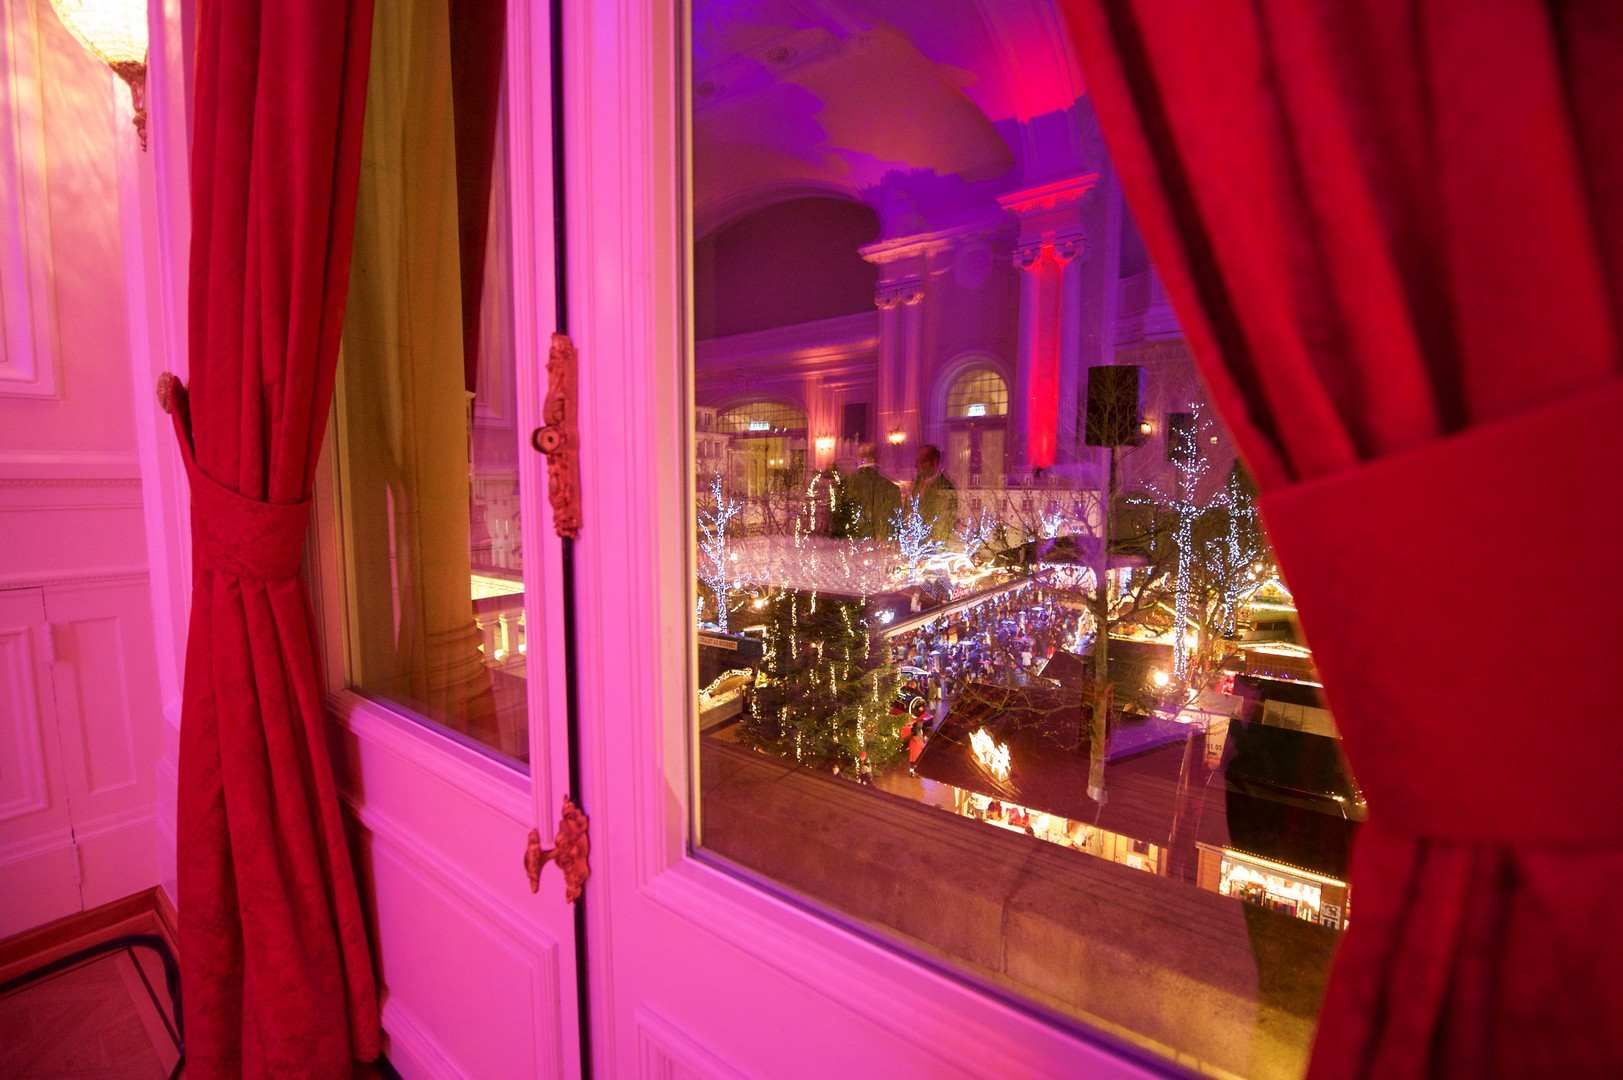 xmas-party-loyens-loeff-2014-project-christmas-group-lux